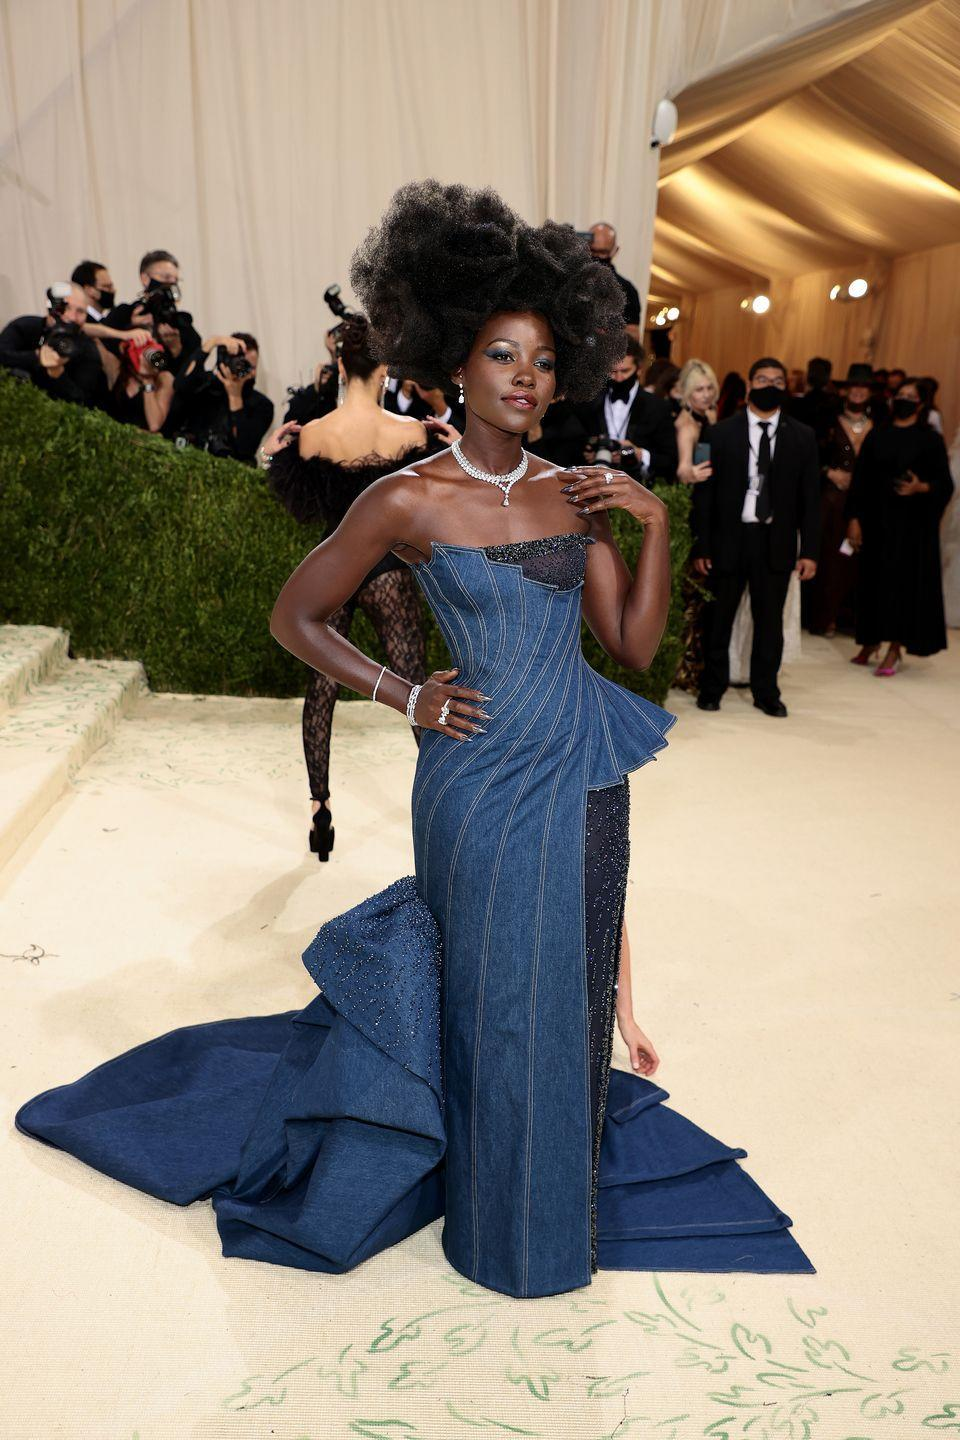 <p>Oscar winner Lupita Nyong'o wore Atelier Versace at the event. </p>